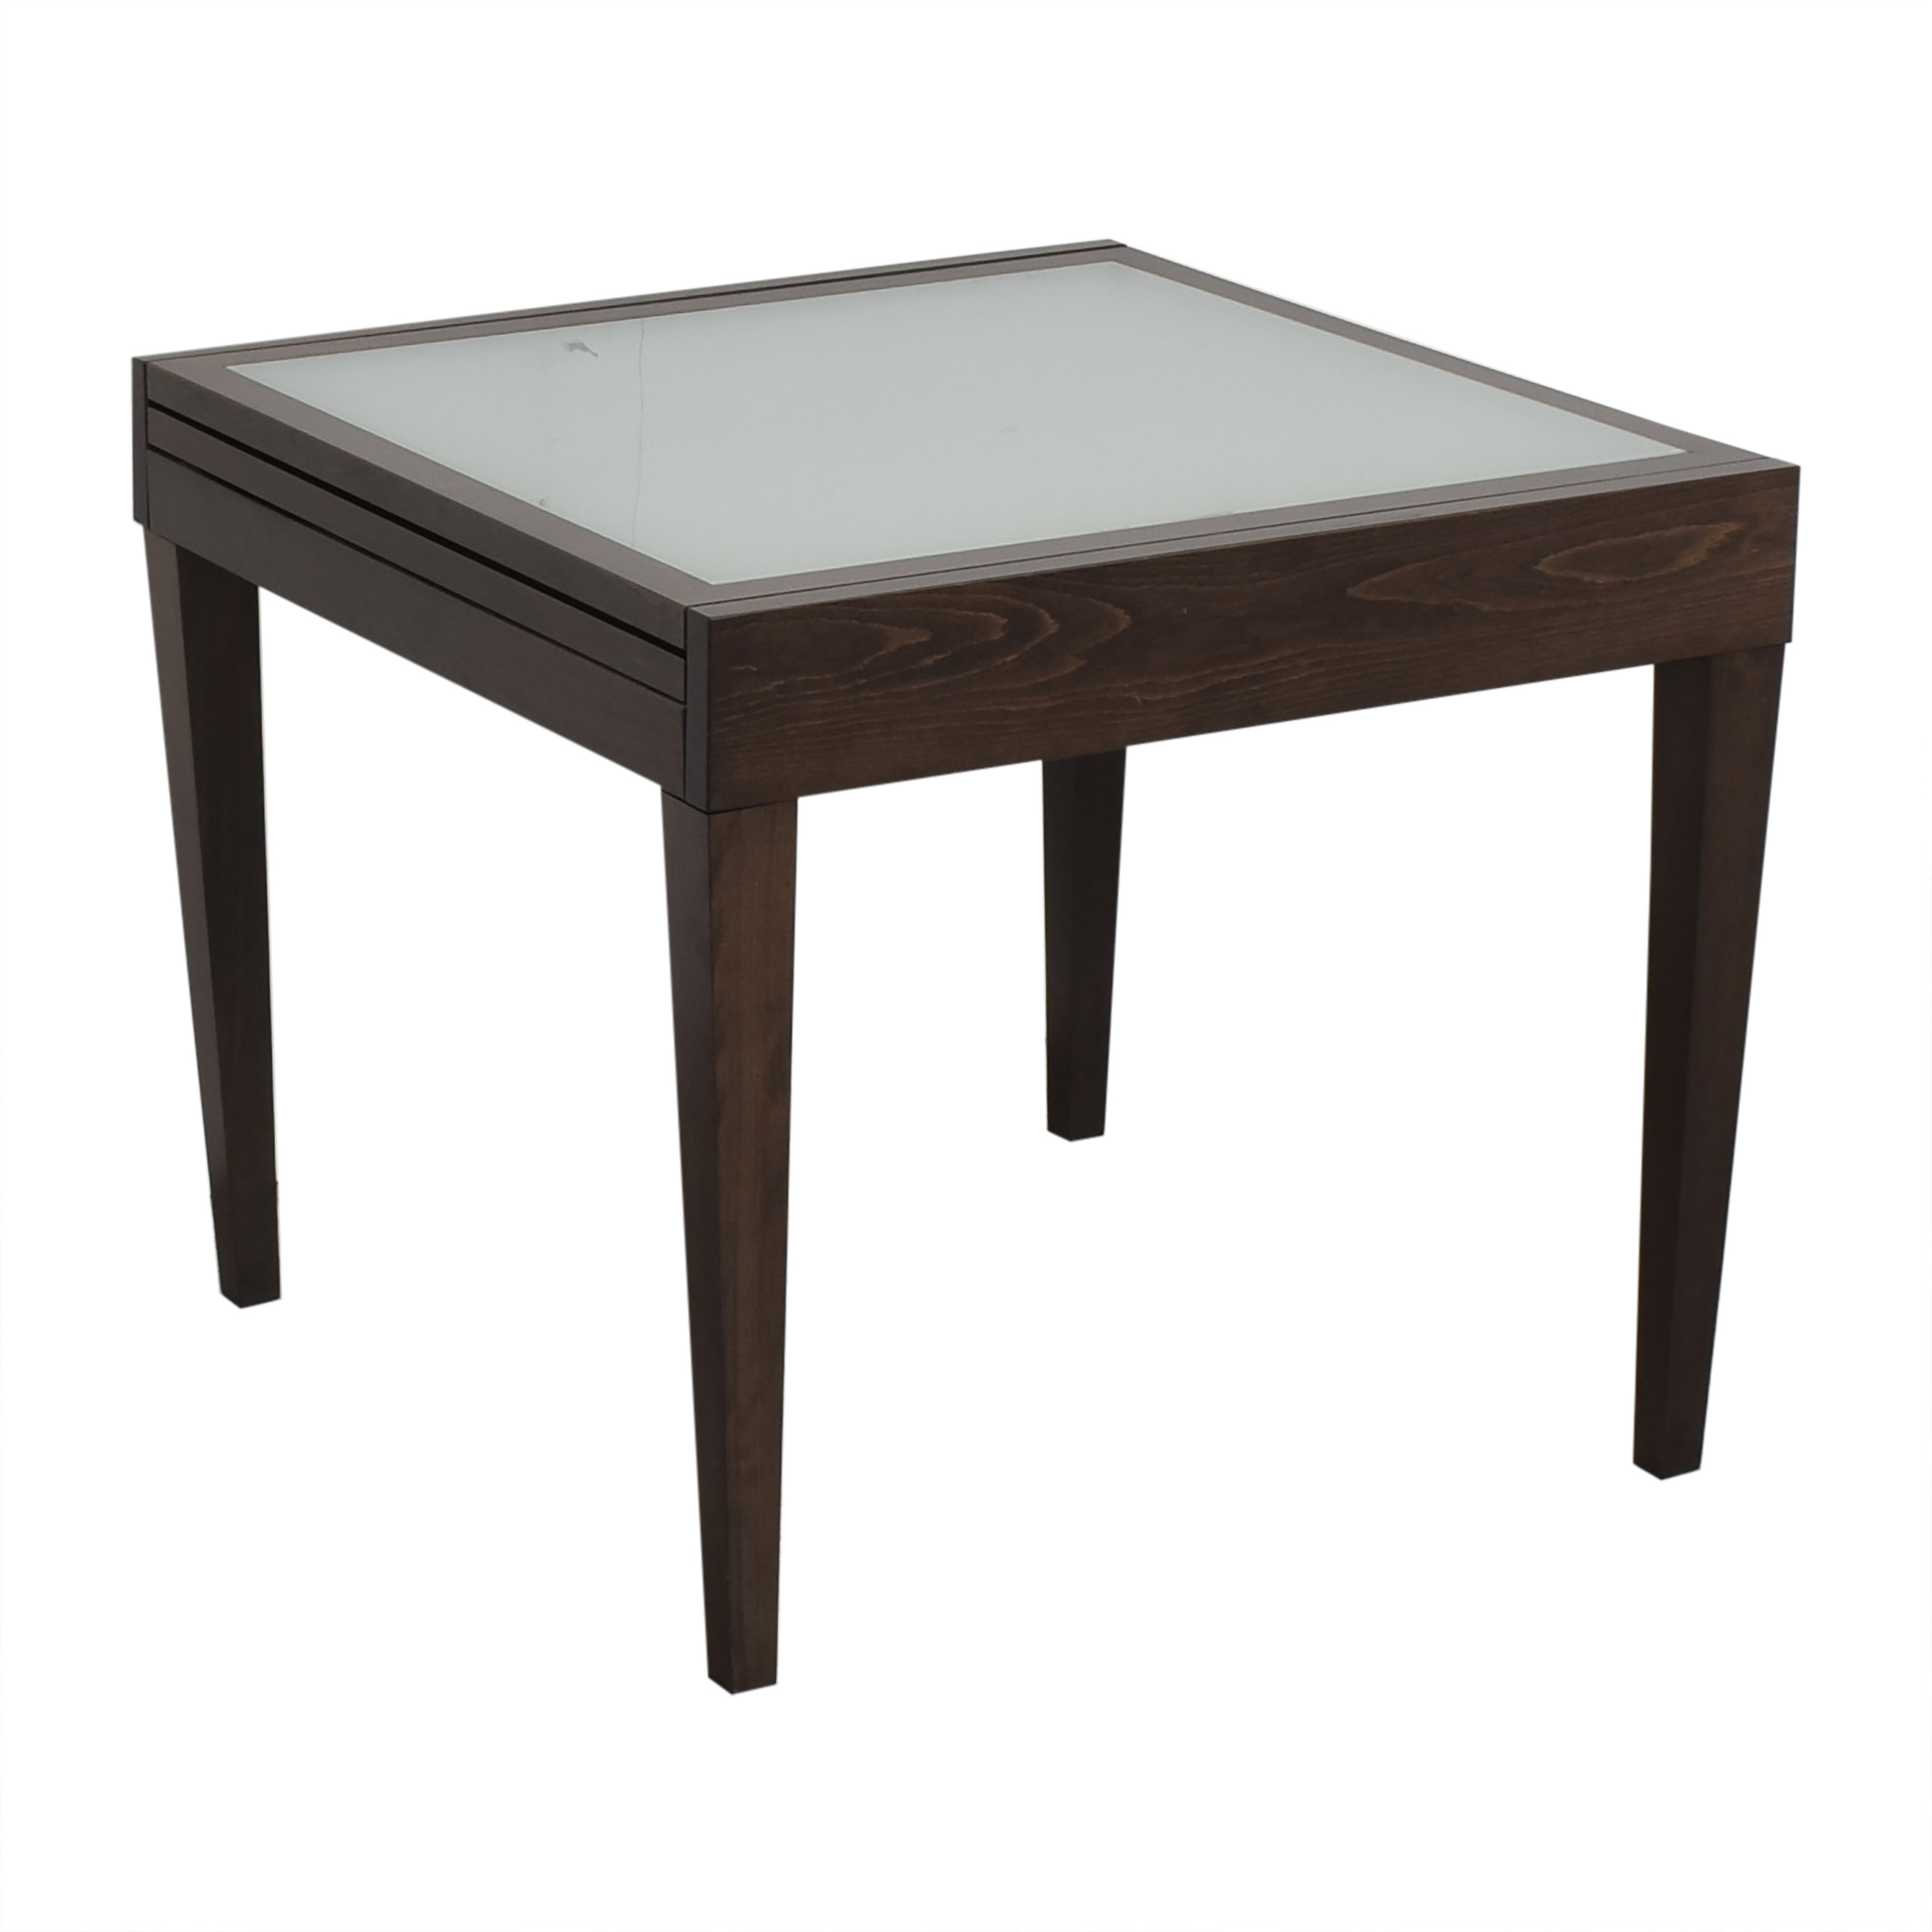 shop Design Within Reach Design Within Reach Spanna Extending Dining Table online